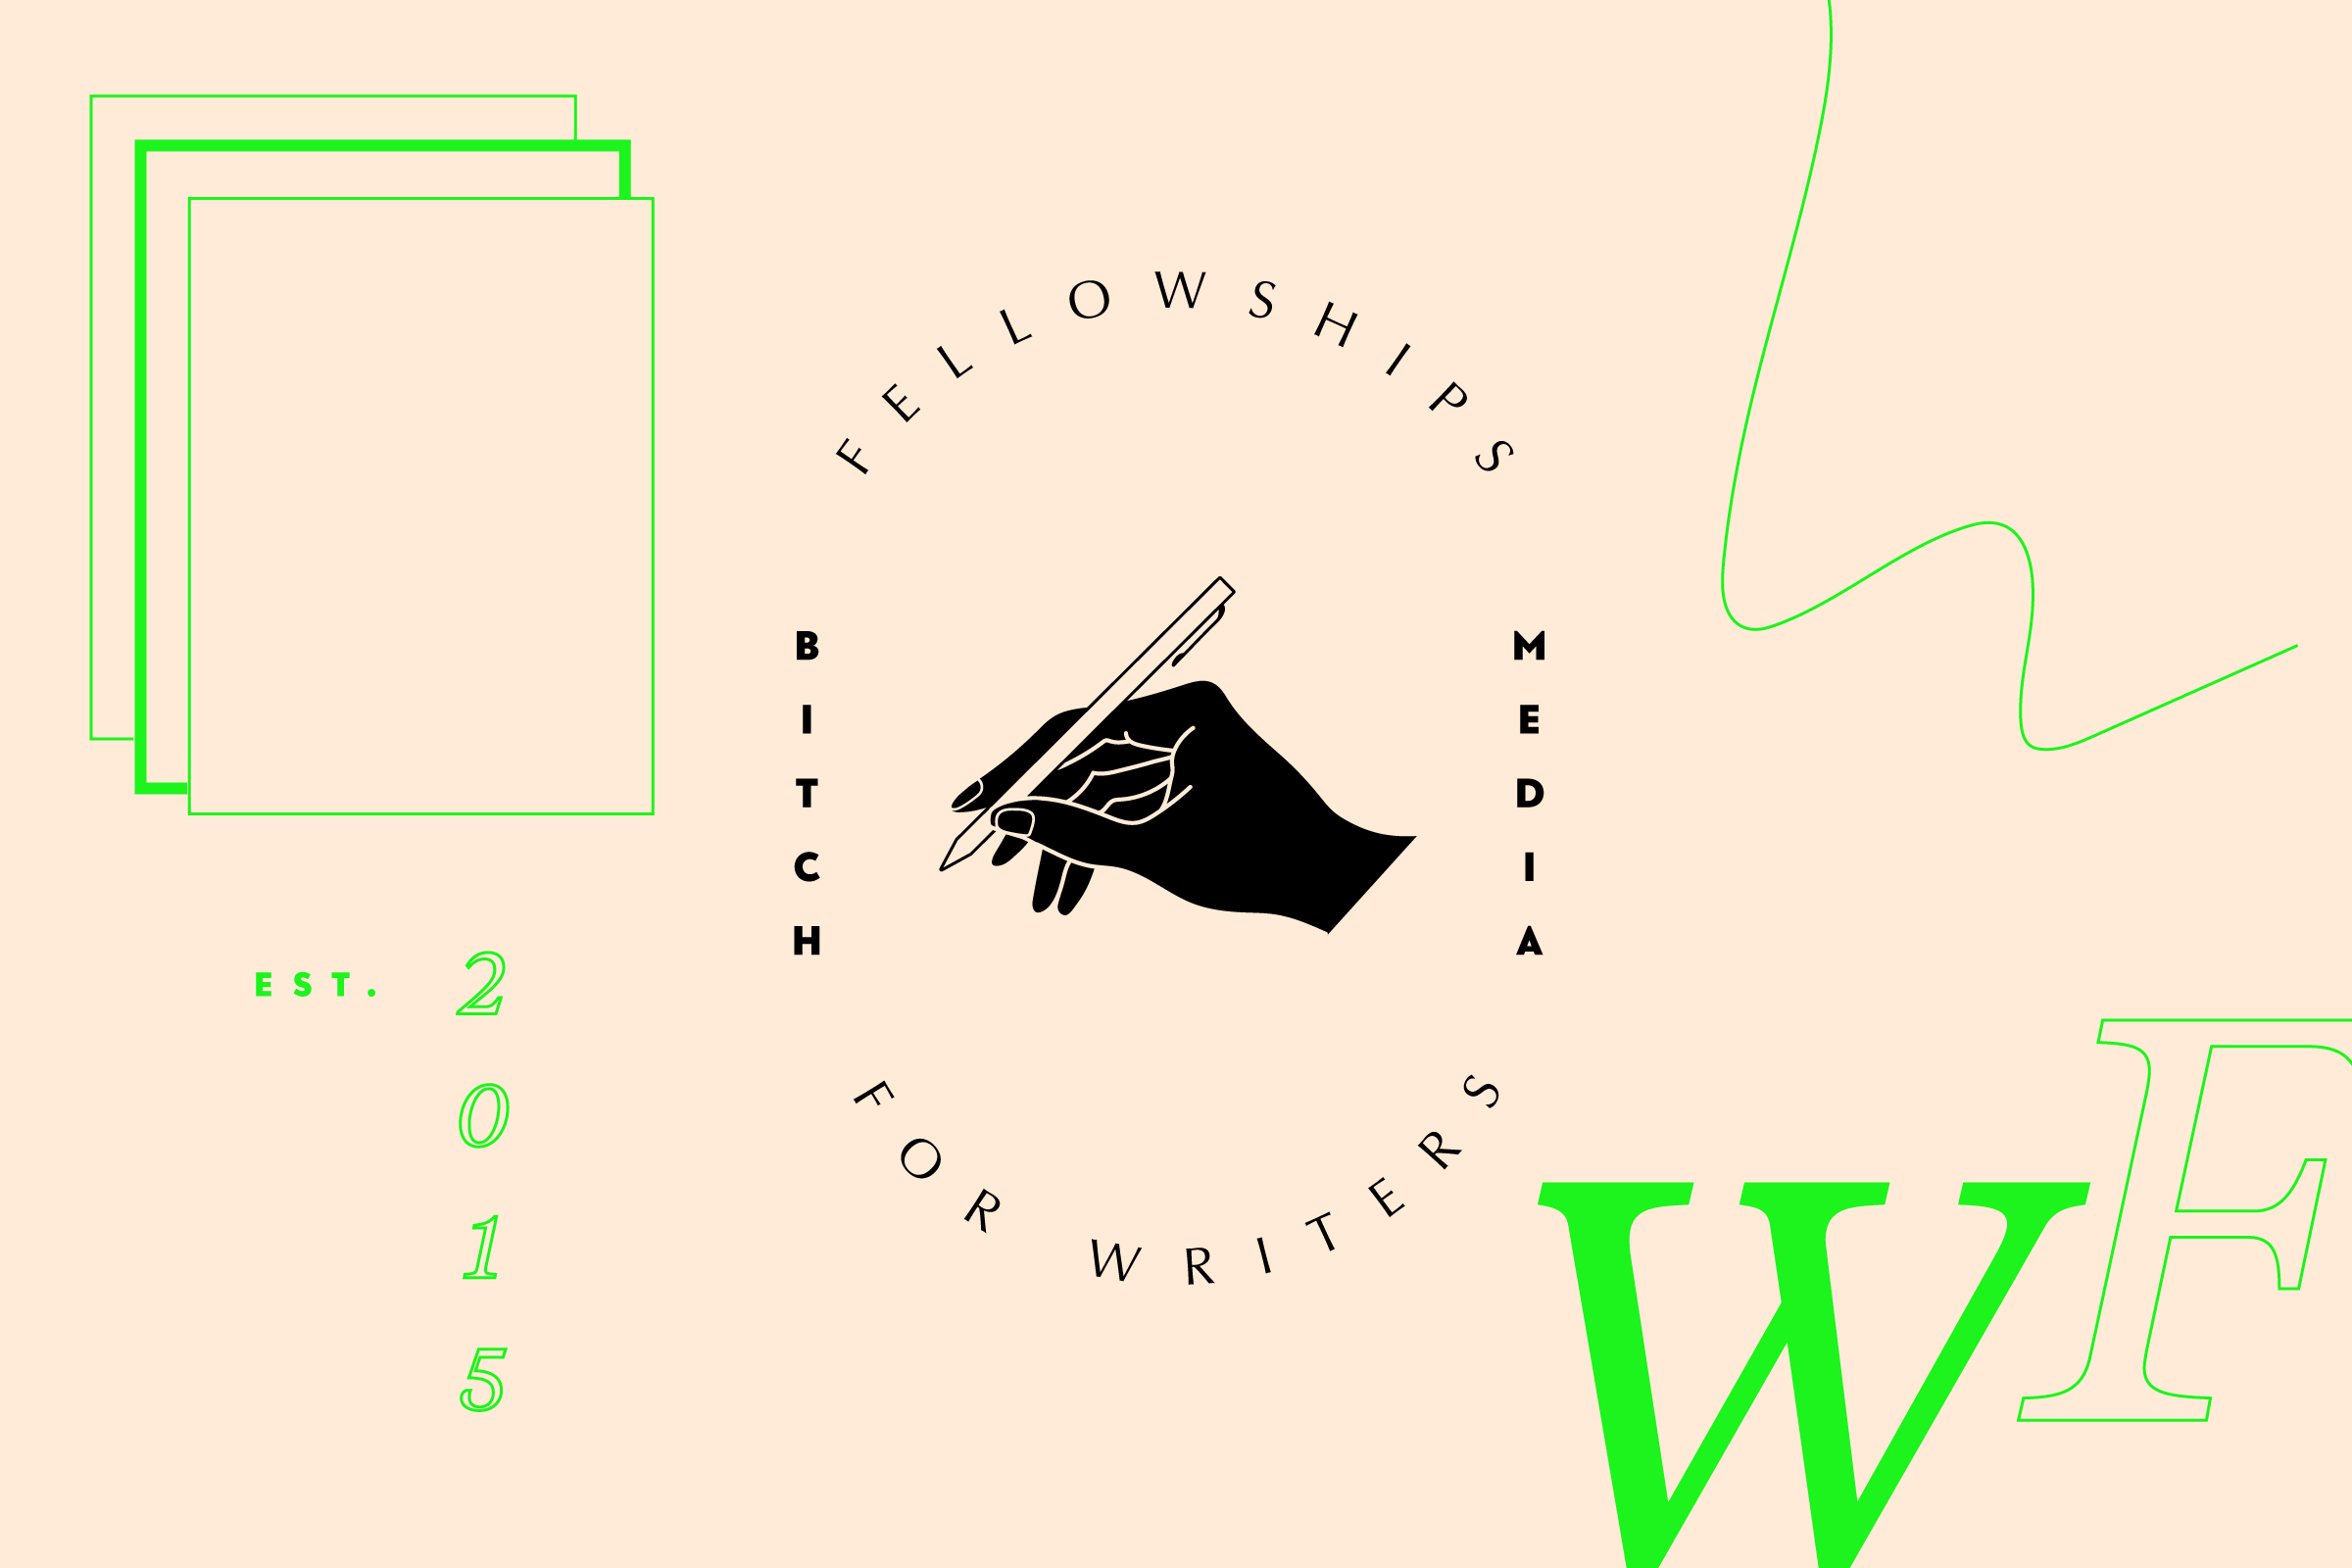 Fellowships for Writers header image of a cream background with the black program logo in the center and neon green illustrations surrounding it